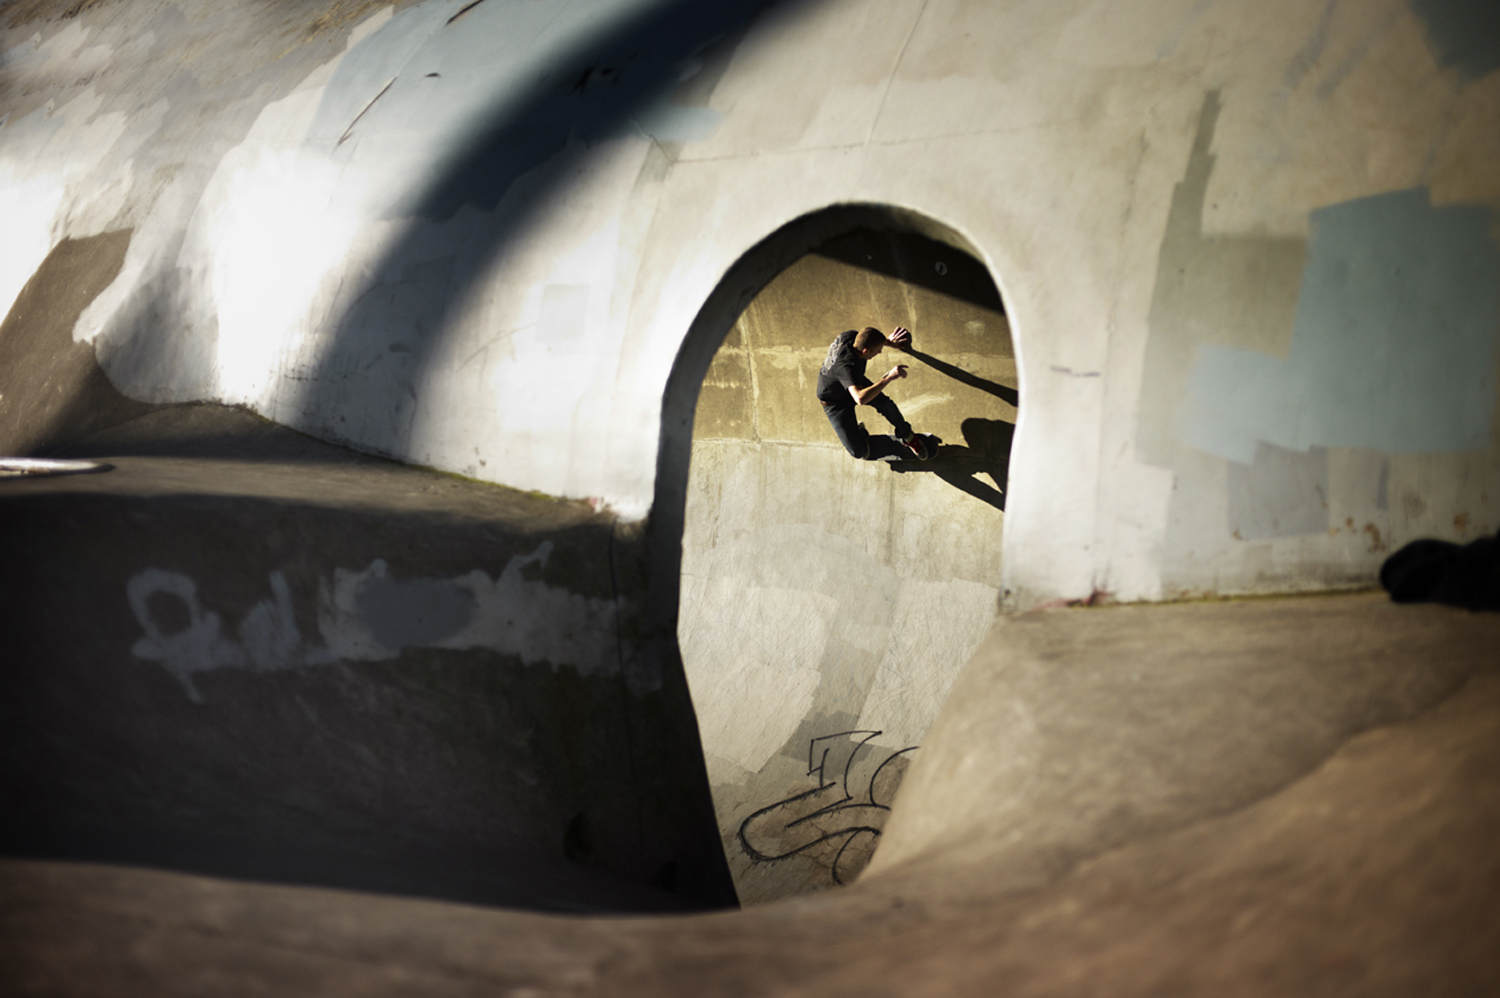 Christian_Kozowyk_skater_full_pipe